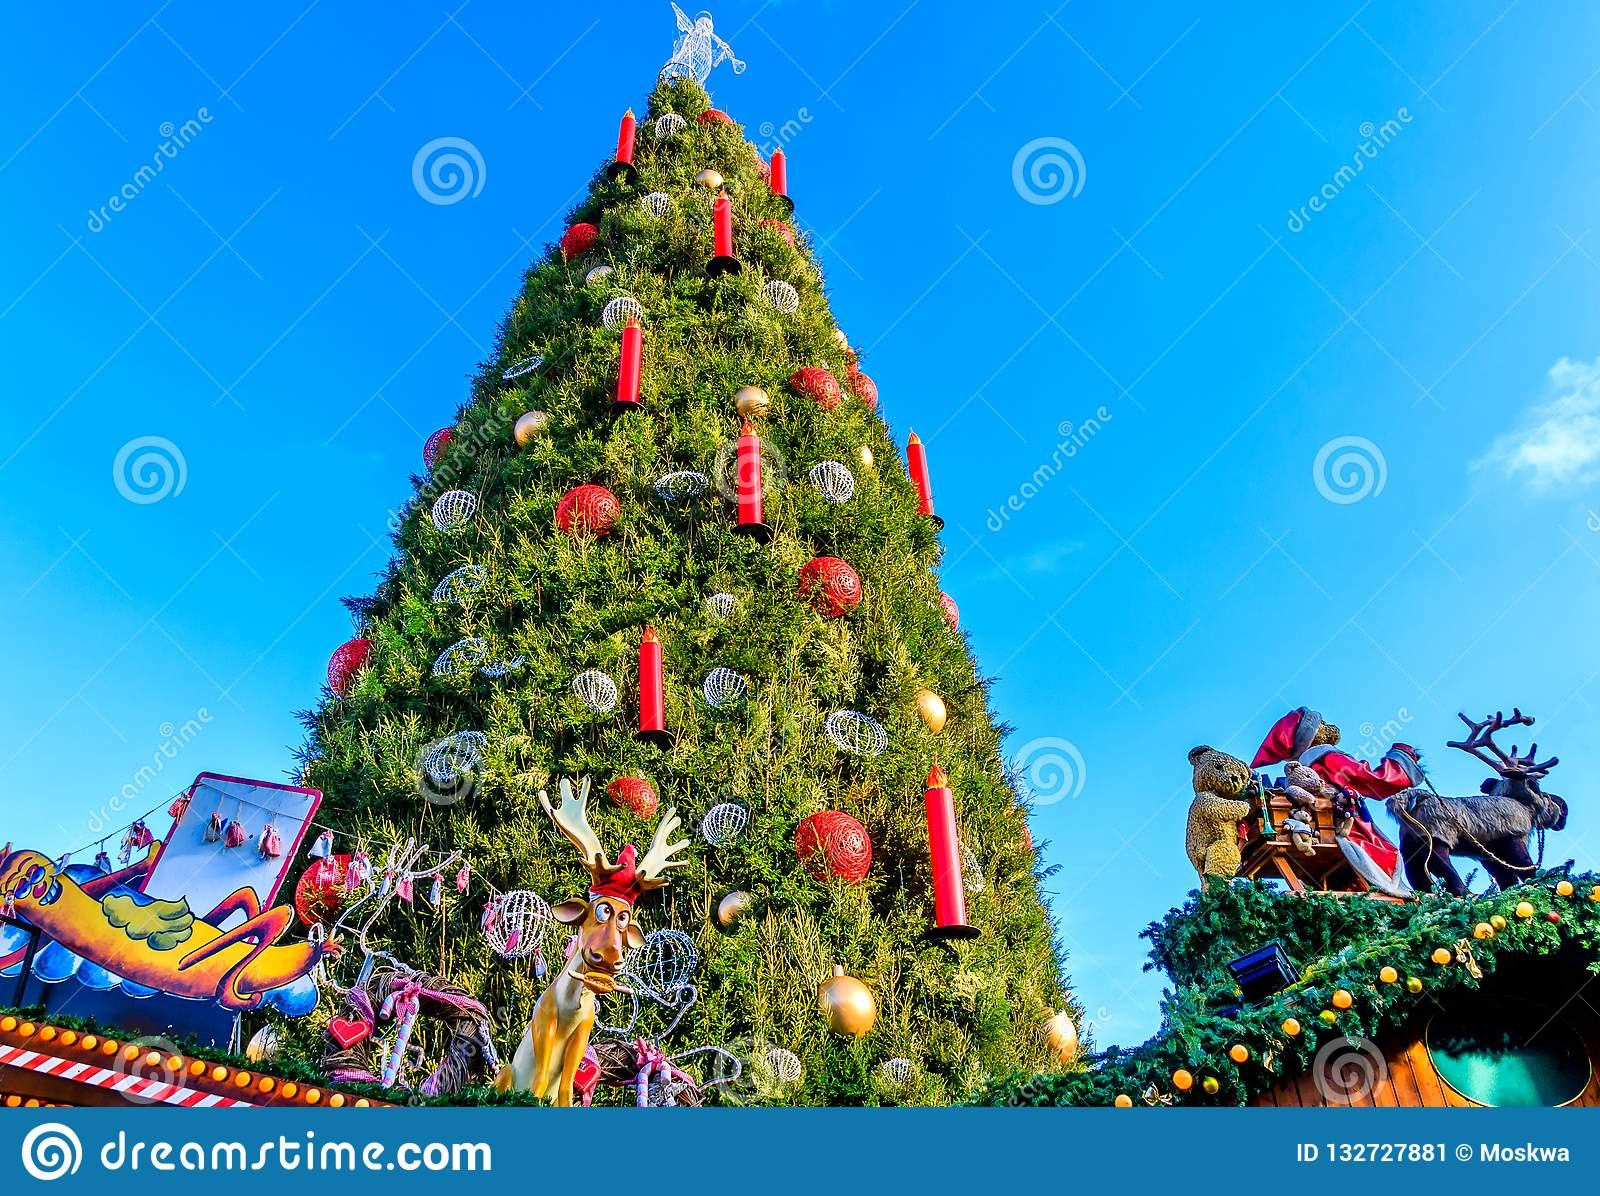 Christmas Market In The German Town Of Dortmund Stock Image Image Of German International 132727881